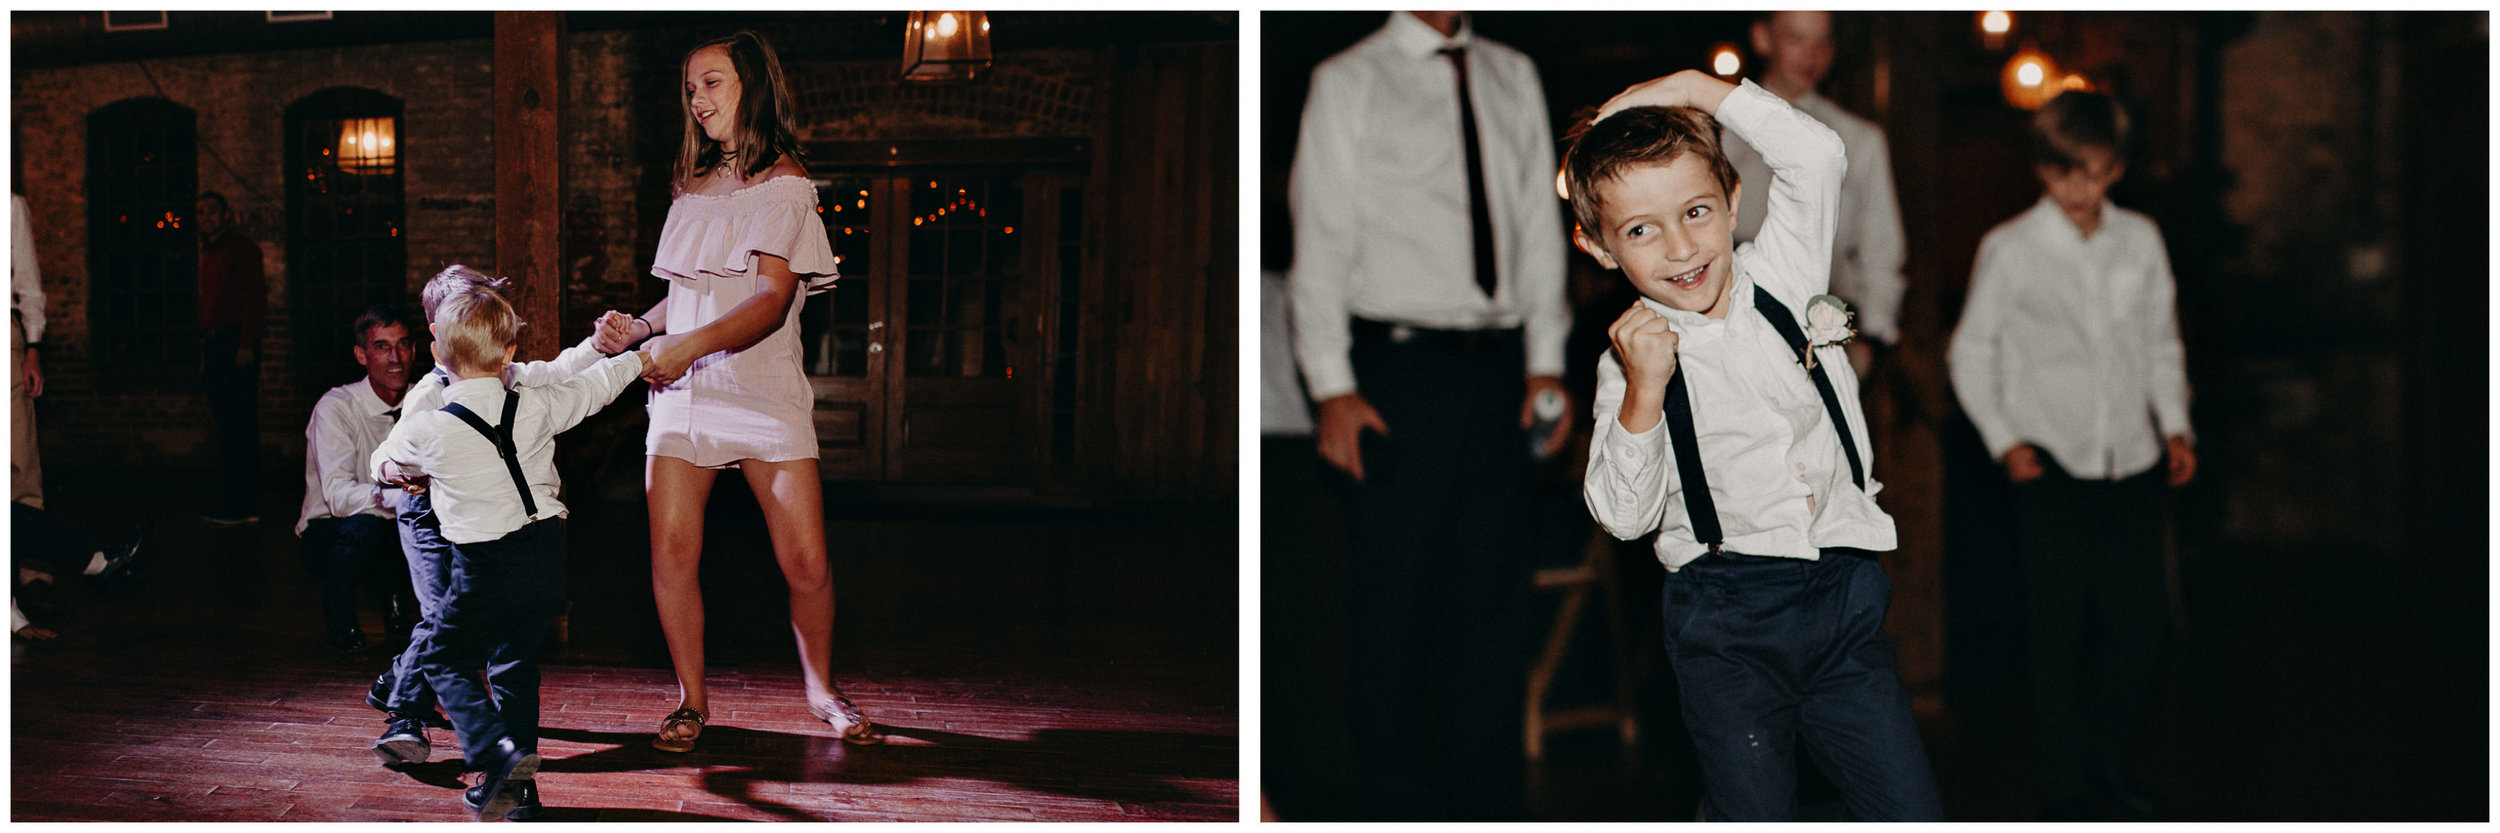 159 - Bride and groom : Dancing: Details : Toasts wedding - Atlanta wedding photographer.JPG